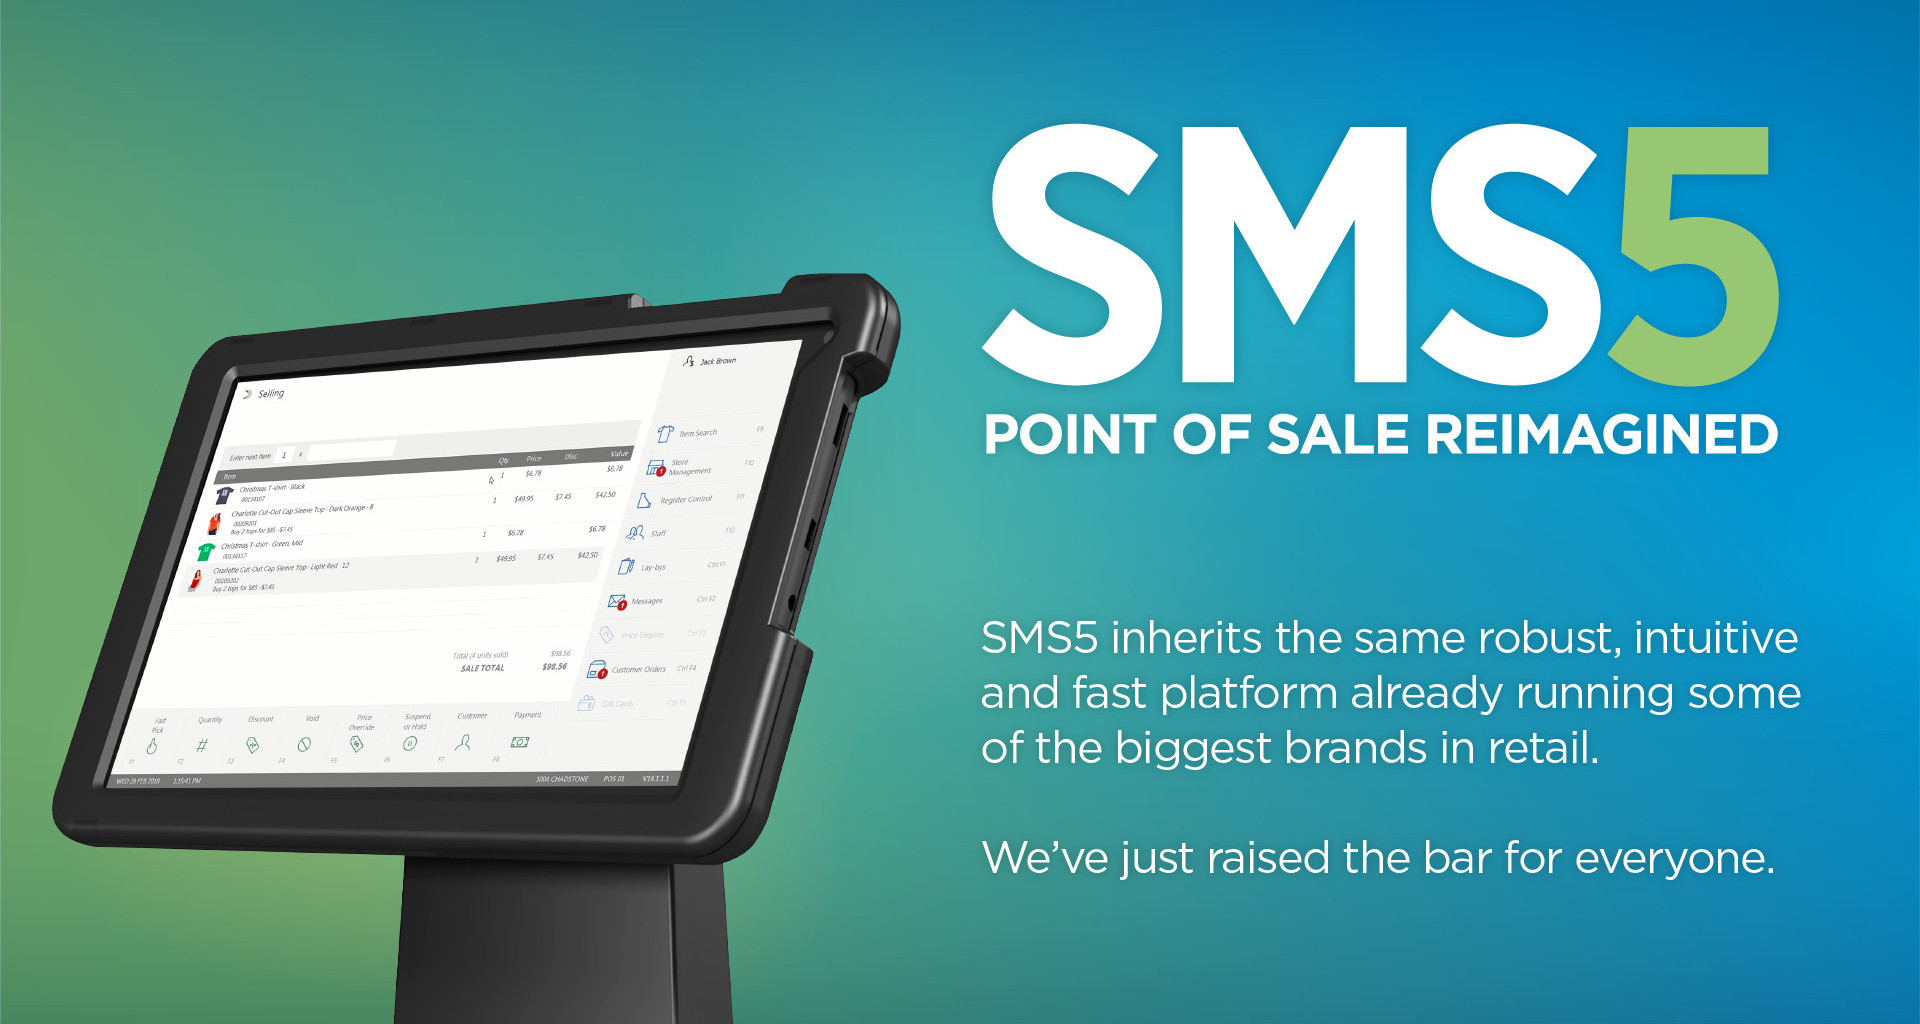 SMS5 inherits the same robust, intuitive and fast platform already running some of the biggest brands in retail. We've just raised the bar for everyone.